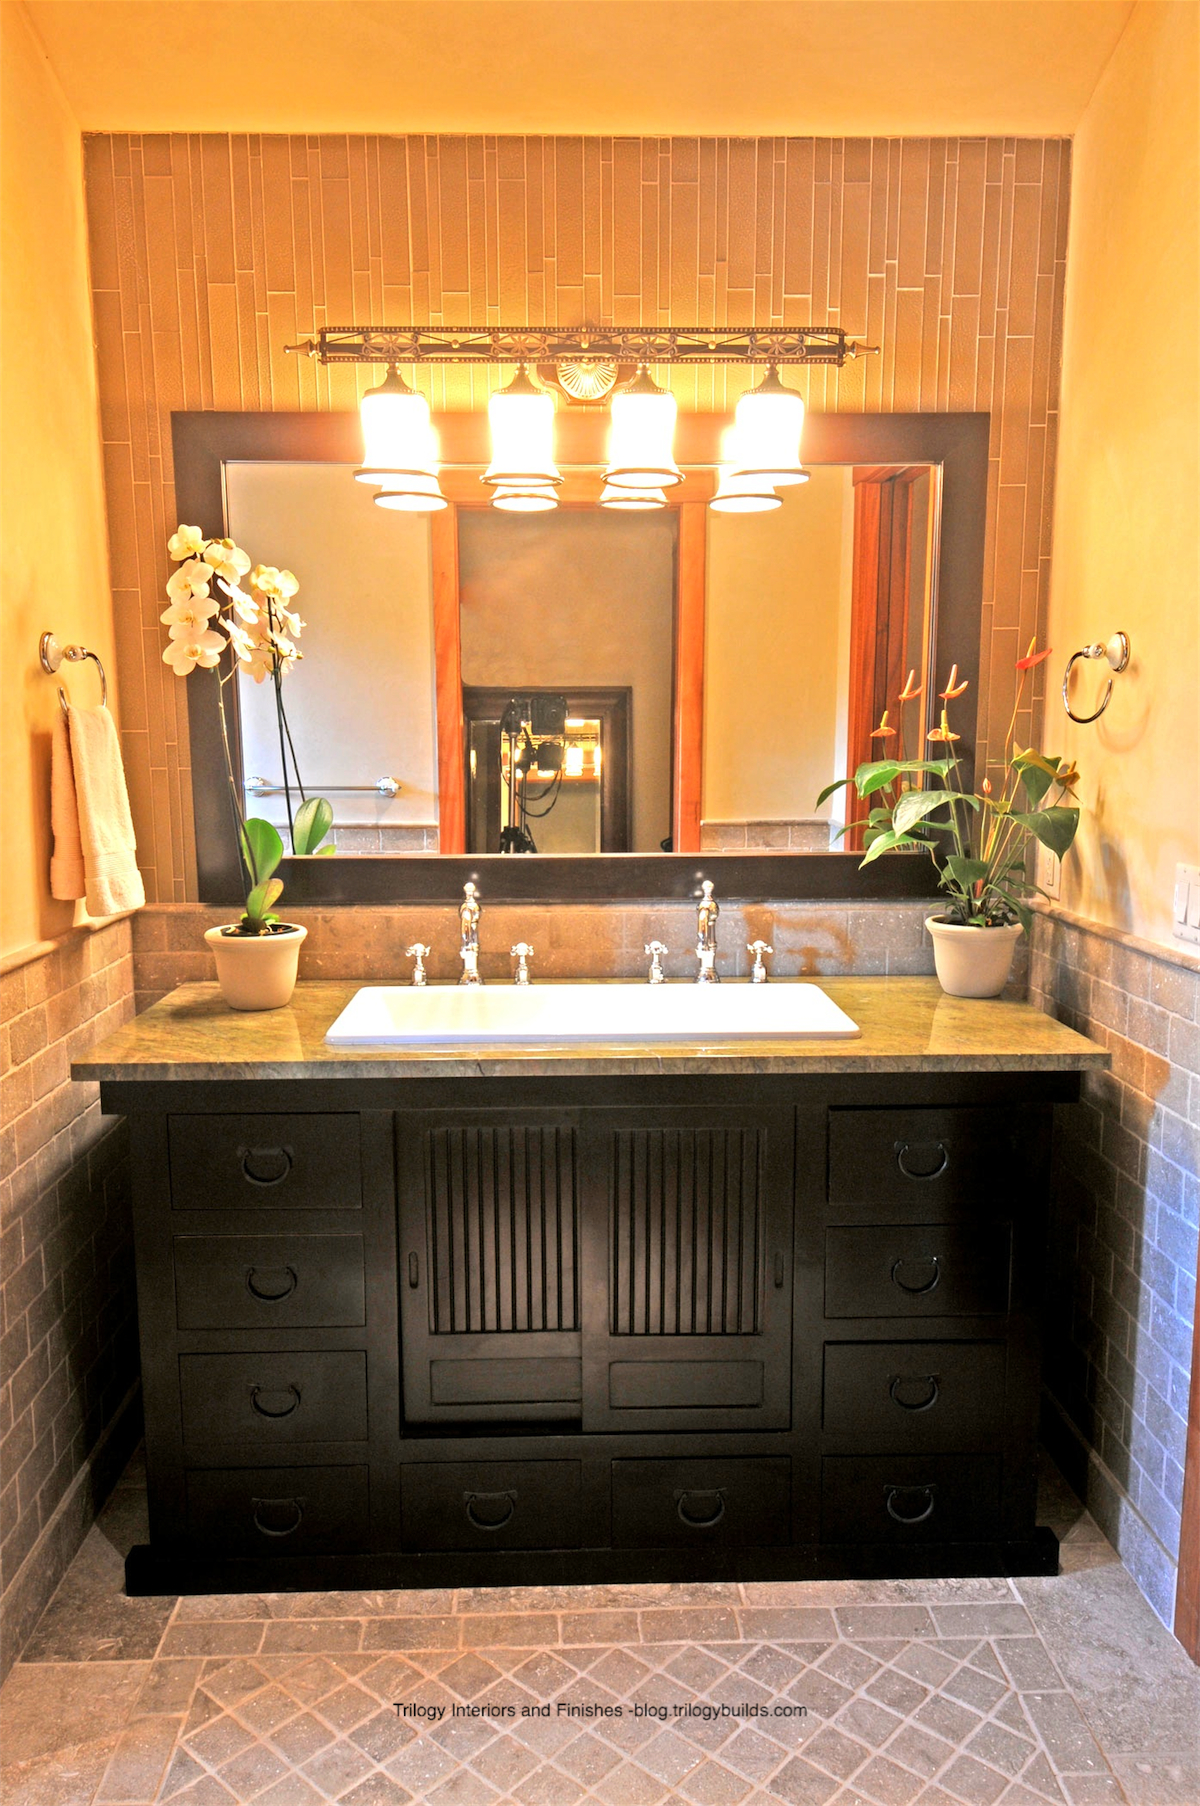 Remodeling Your Bathroom Consider These Vanity Trends Trilogy - Bathroom vanity renovations